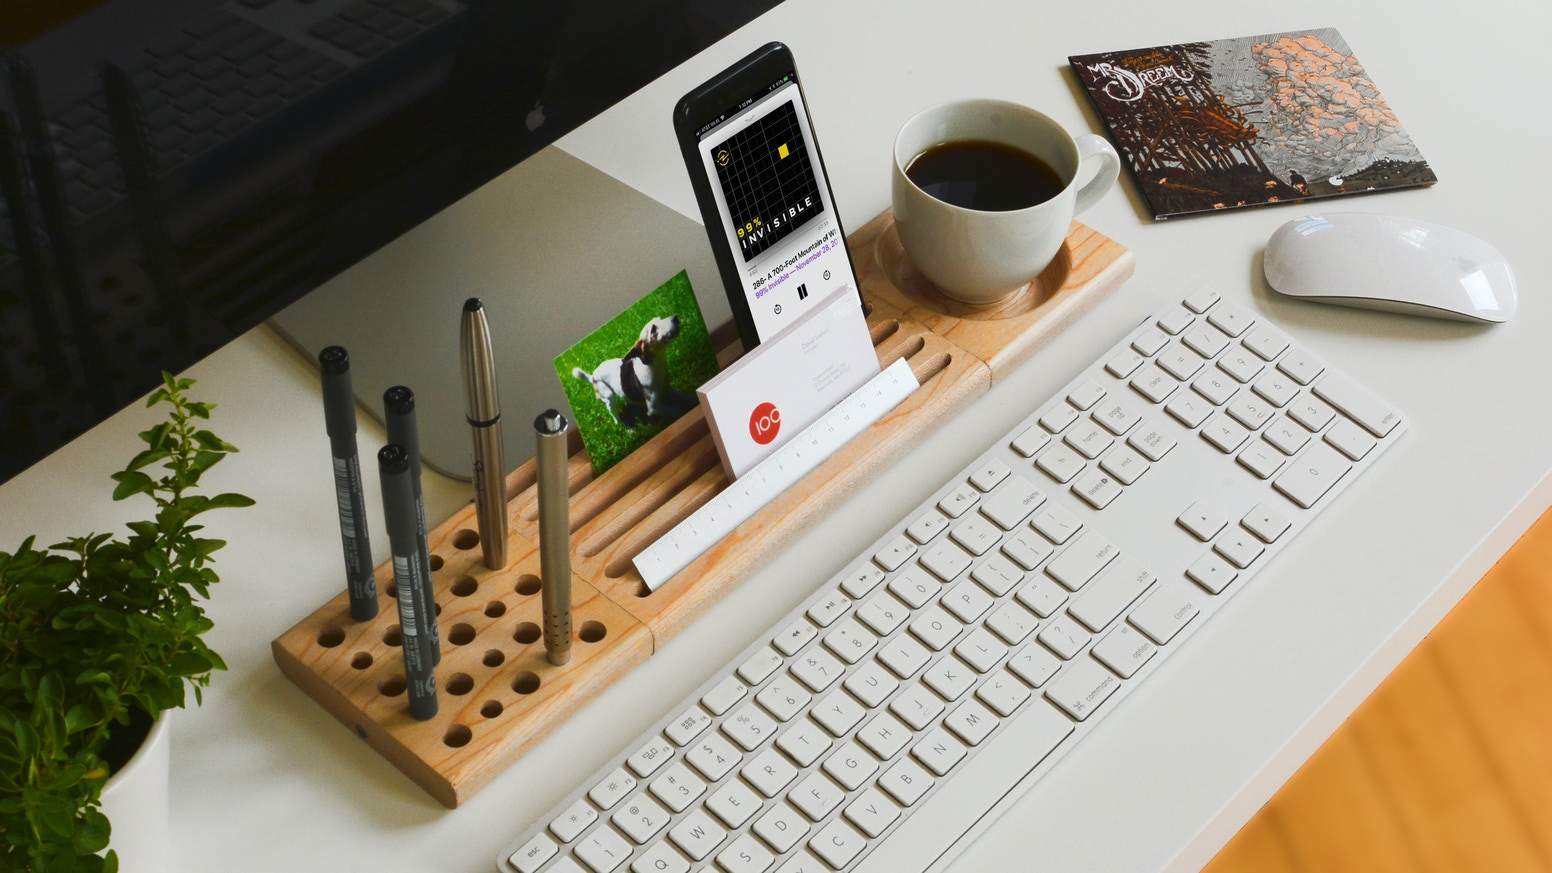 A simple, customizable, magnetically-connected organization system for home or office, crafted from solid Walnut & Maple